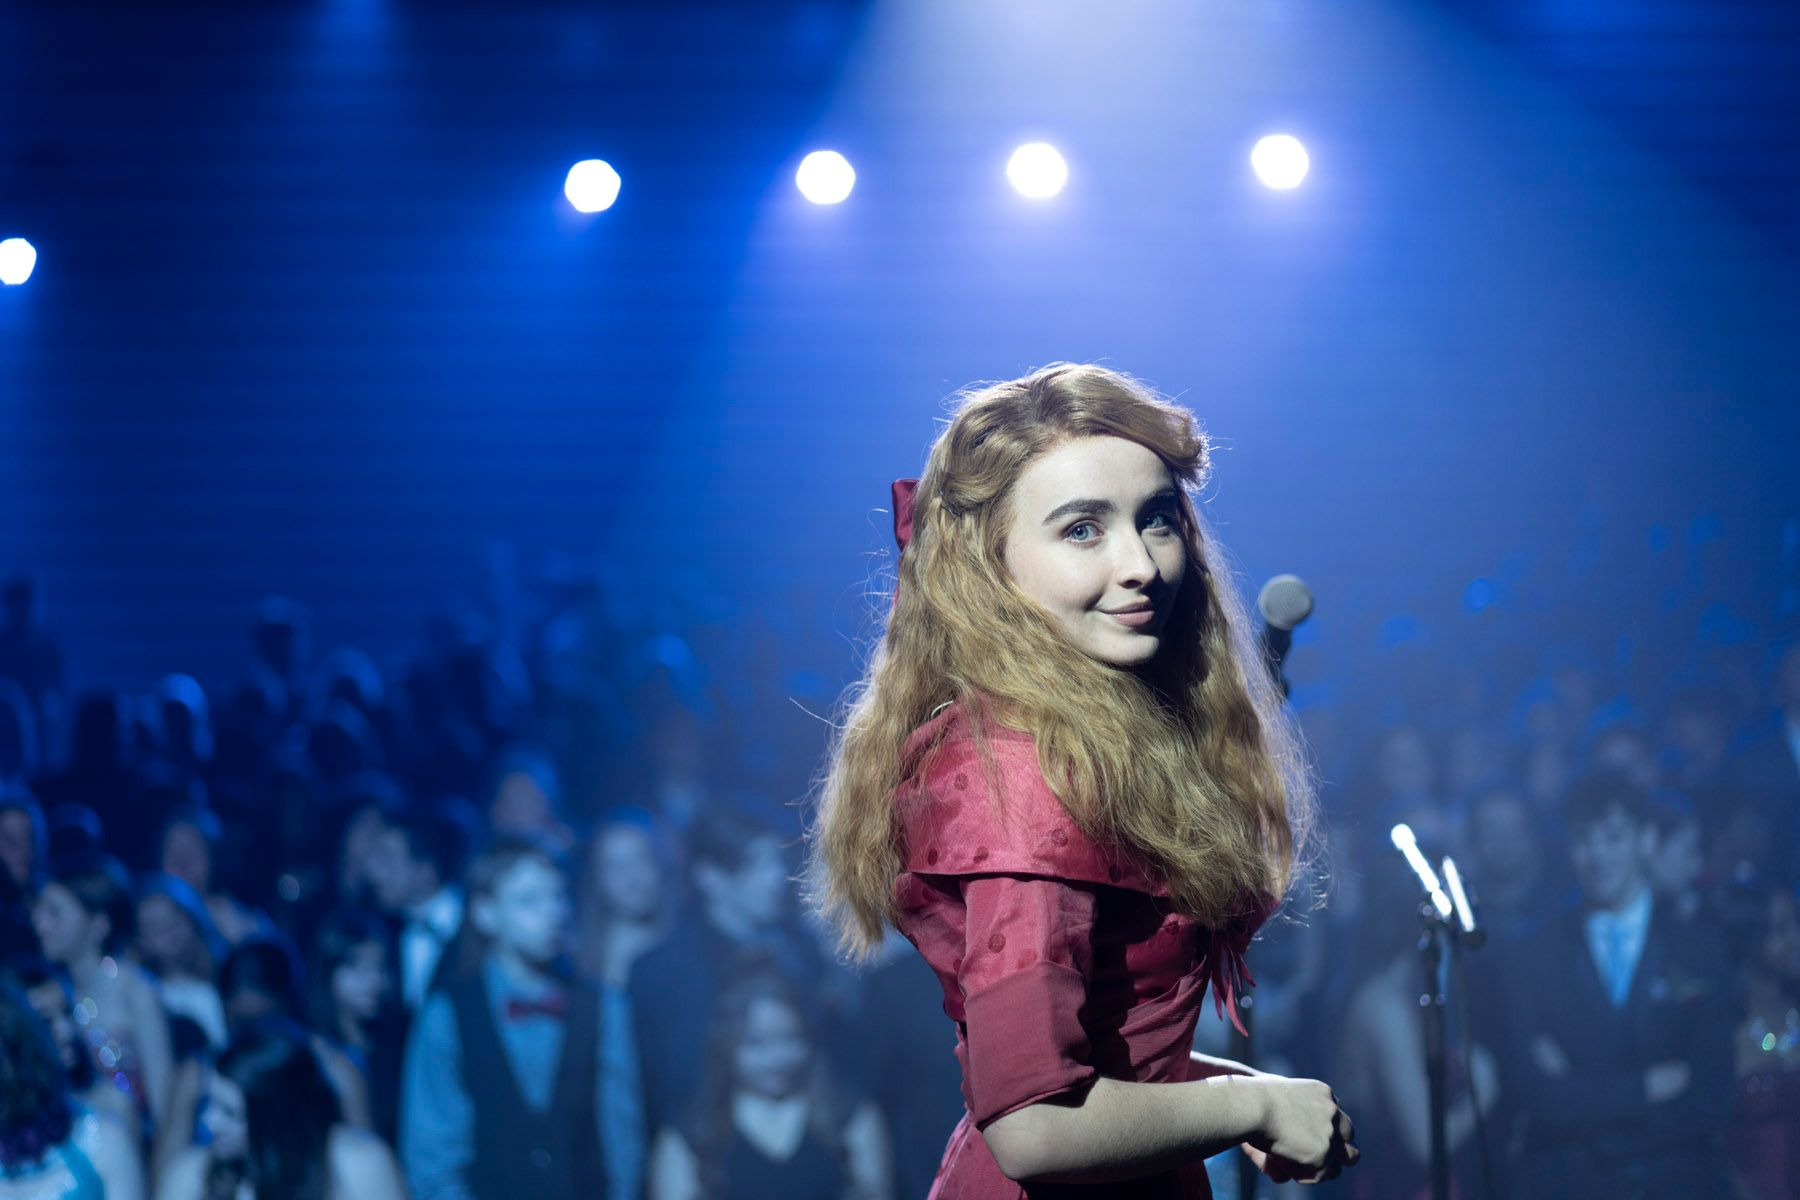 Nuvole: Sabrina Carpenter in una scena del film